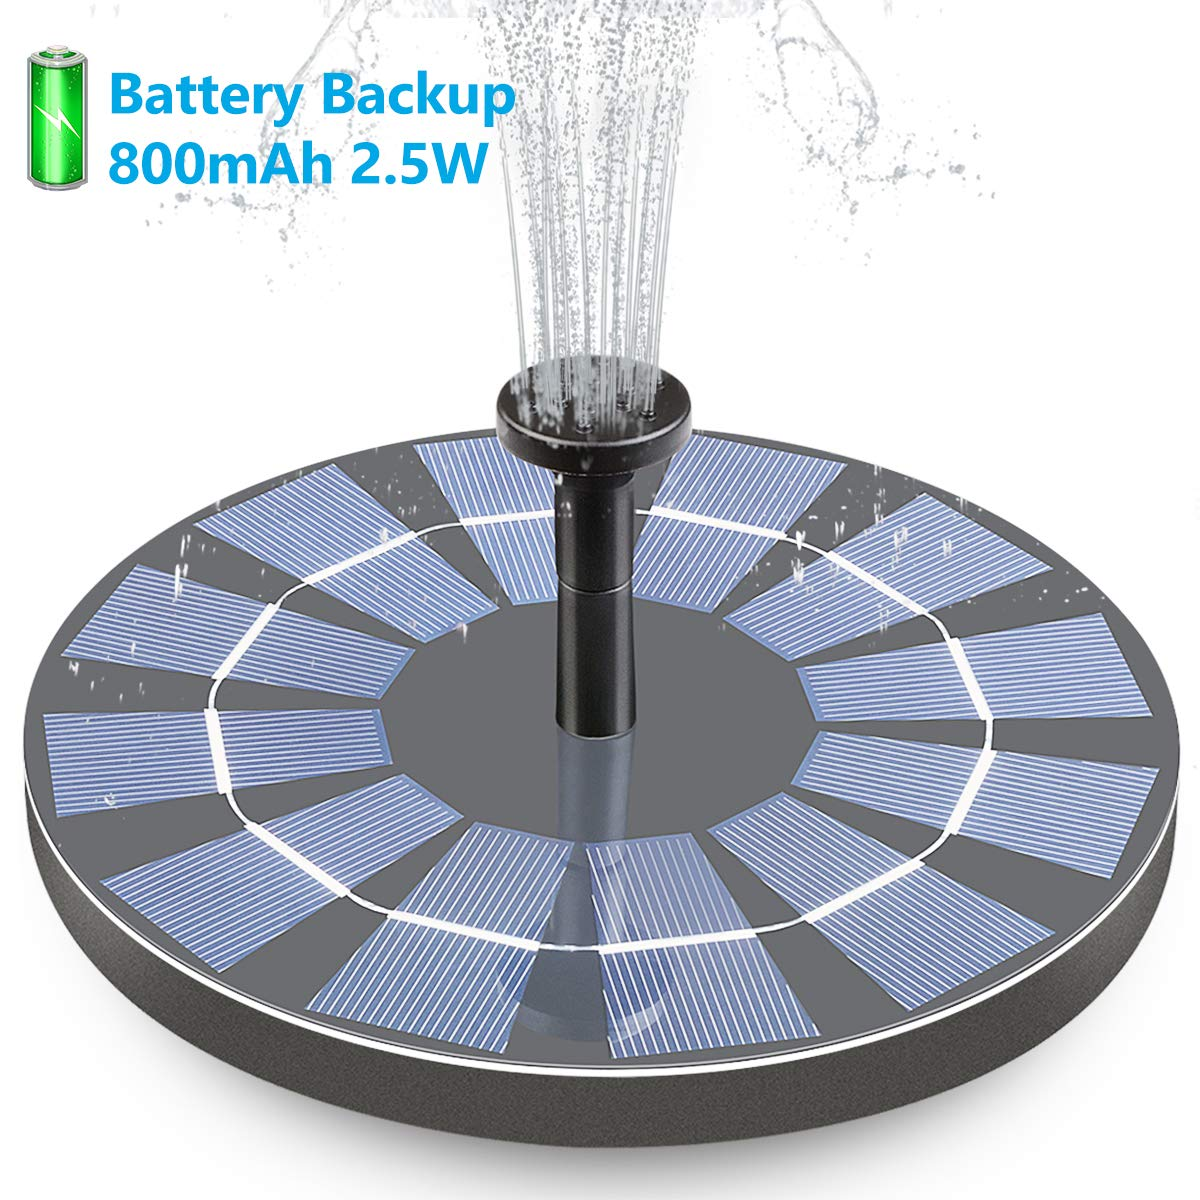 Hiluckey Solar Bird Bath Fountain with Battery Backup, 2.5W Free Standing Solar Powered Water Fountain Pump Kit